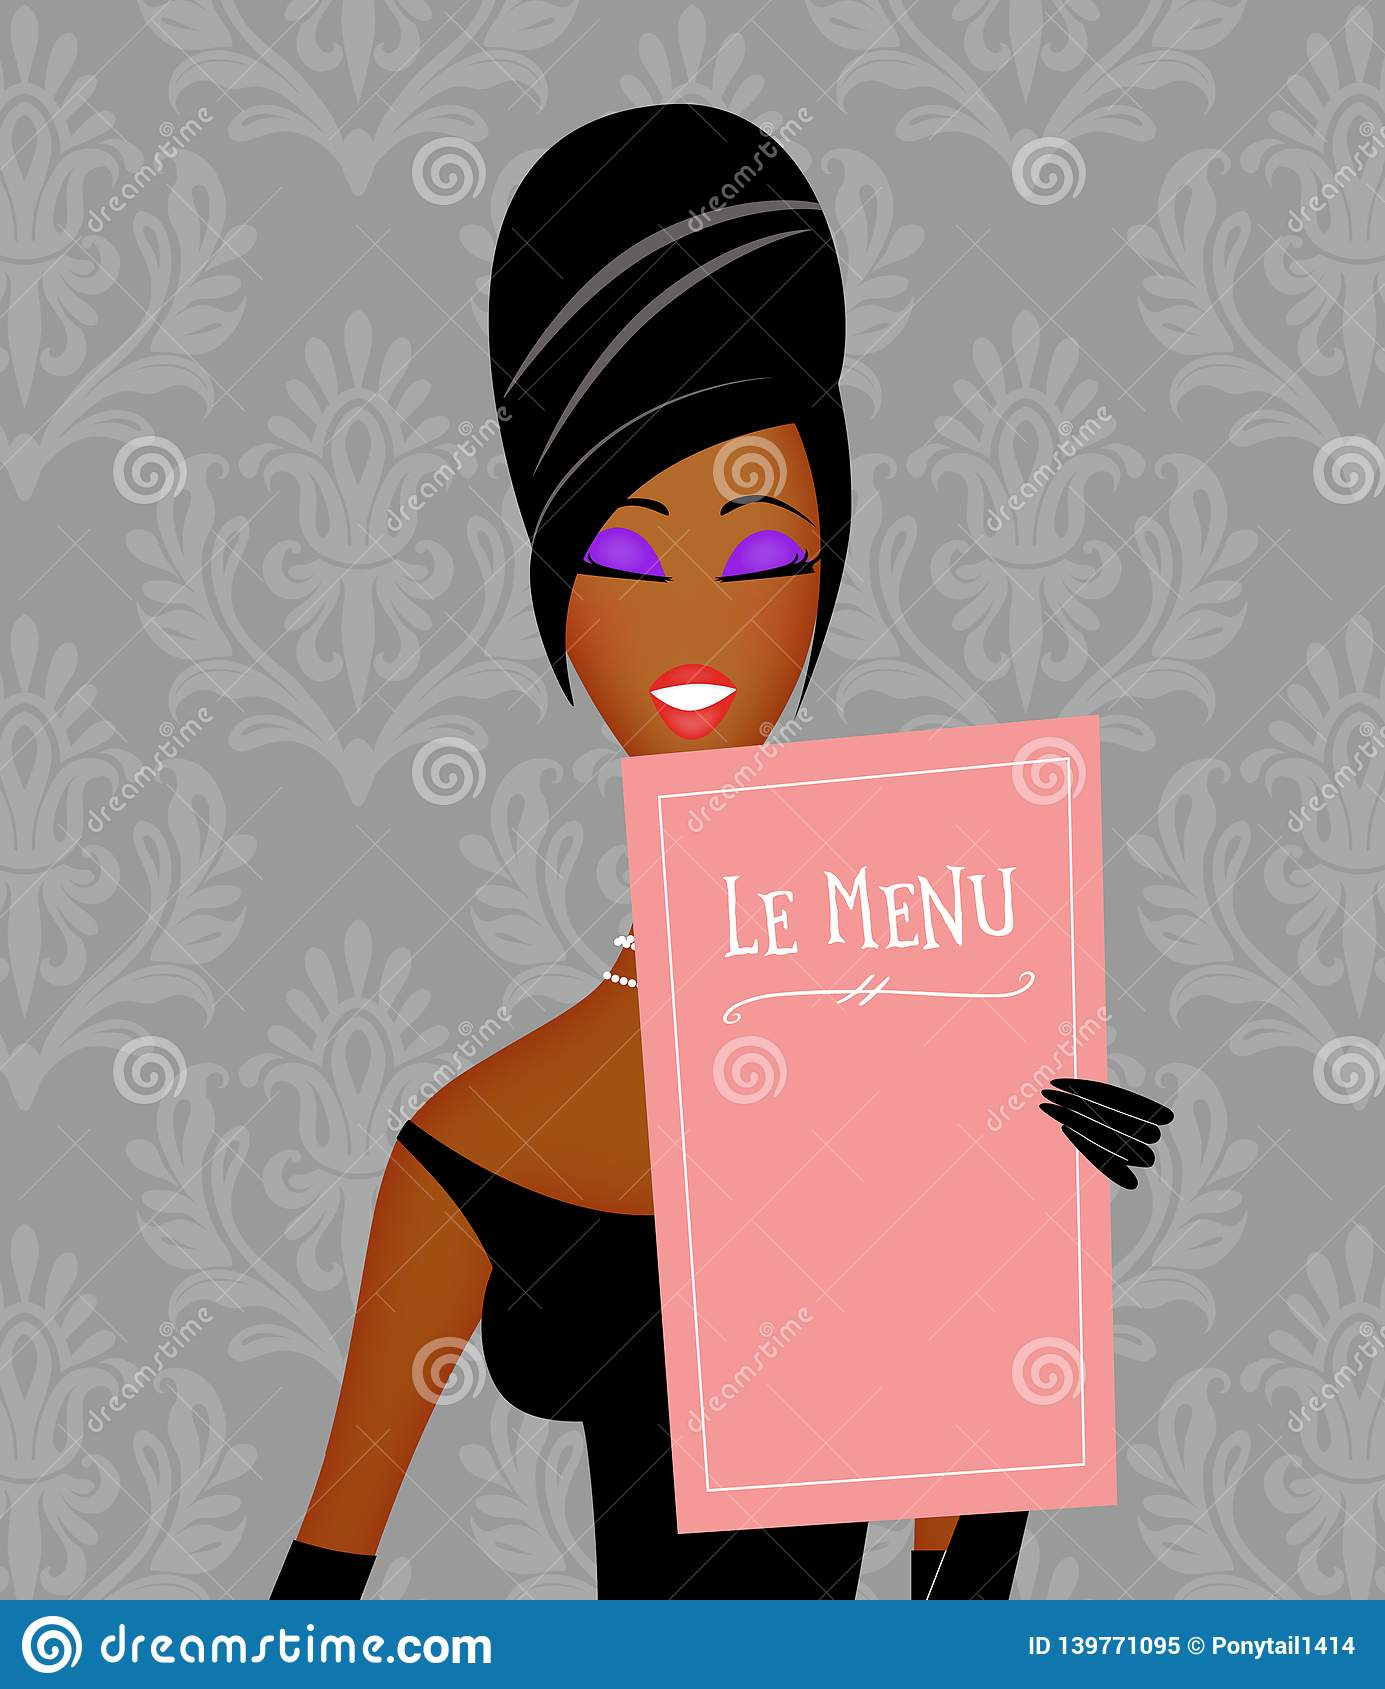 Chic Young Black Woman Reading a Restaurant Menu With Damask Wallpaper